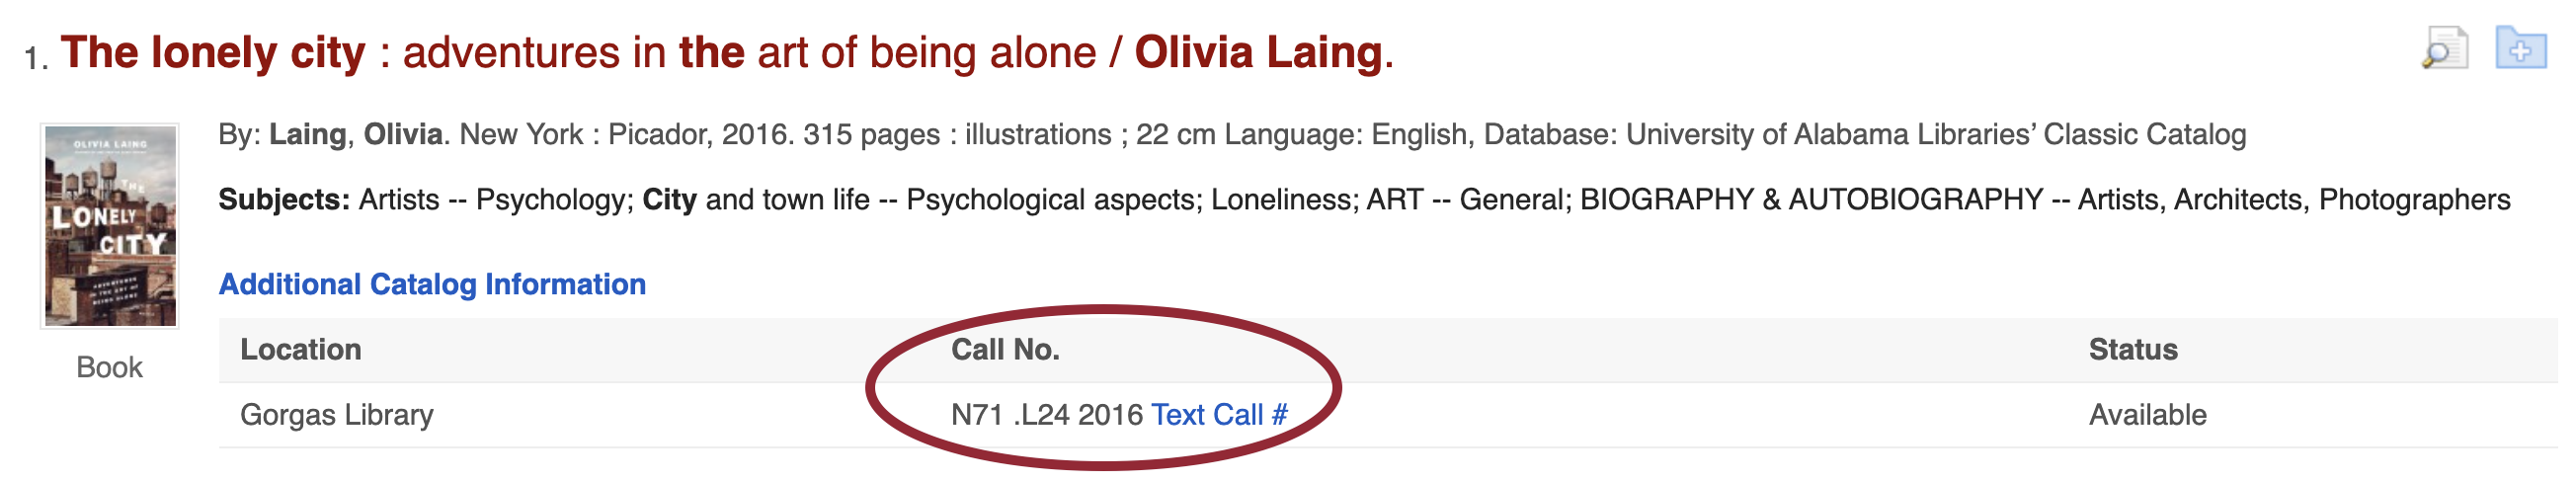 Screen grab from Scout results page for the book The Lonely City by Olivia Laing. The call number is circled.